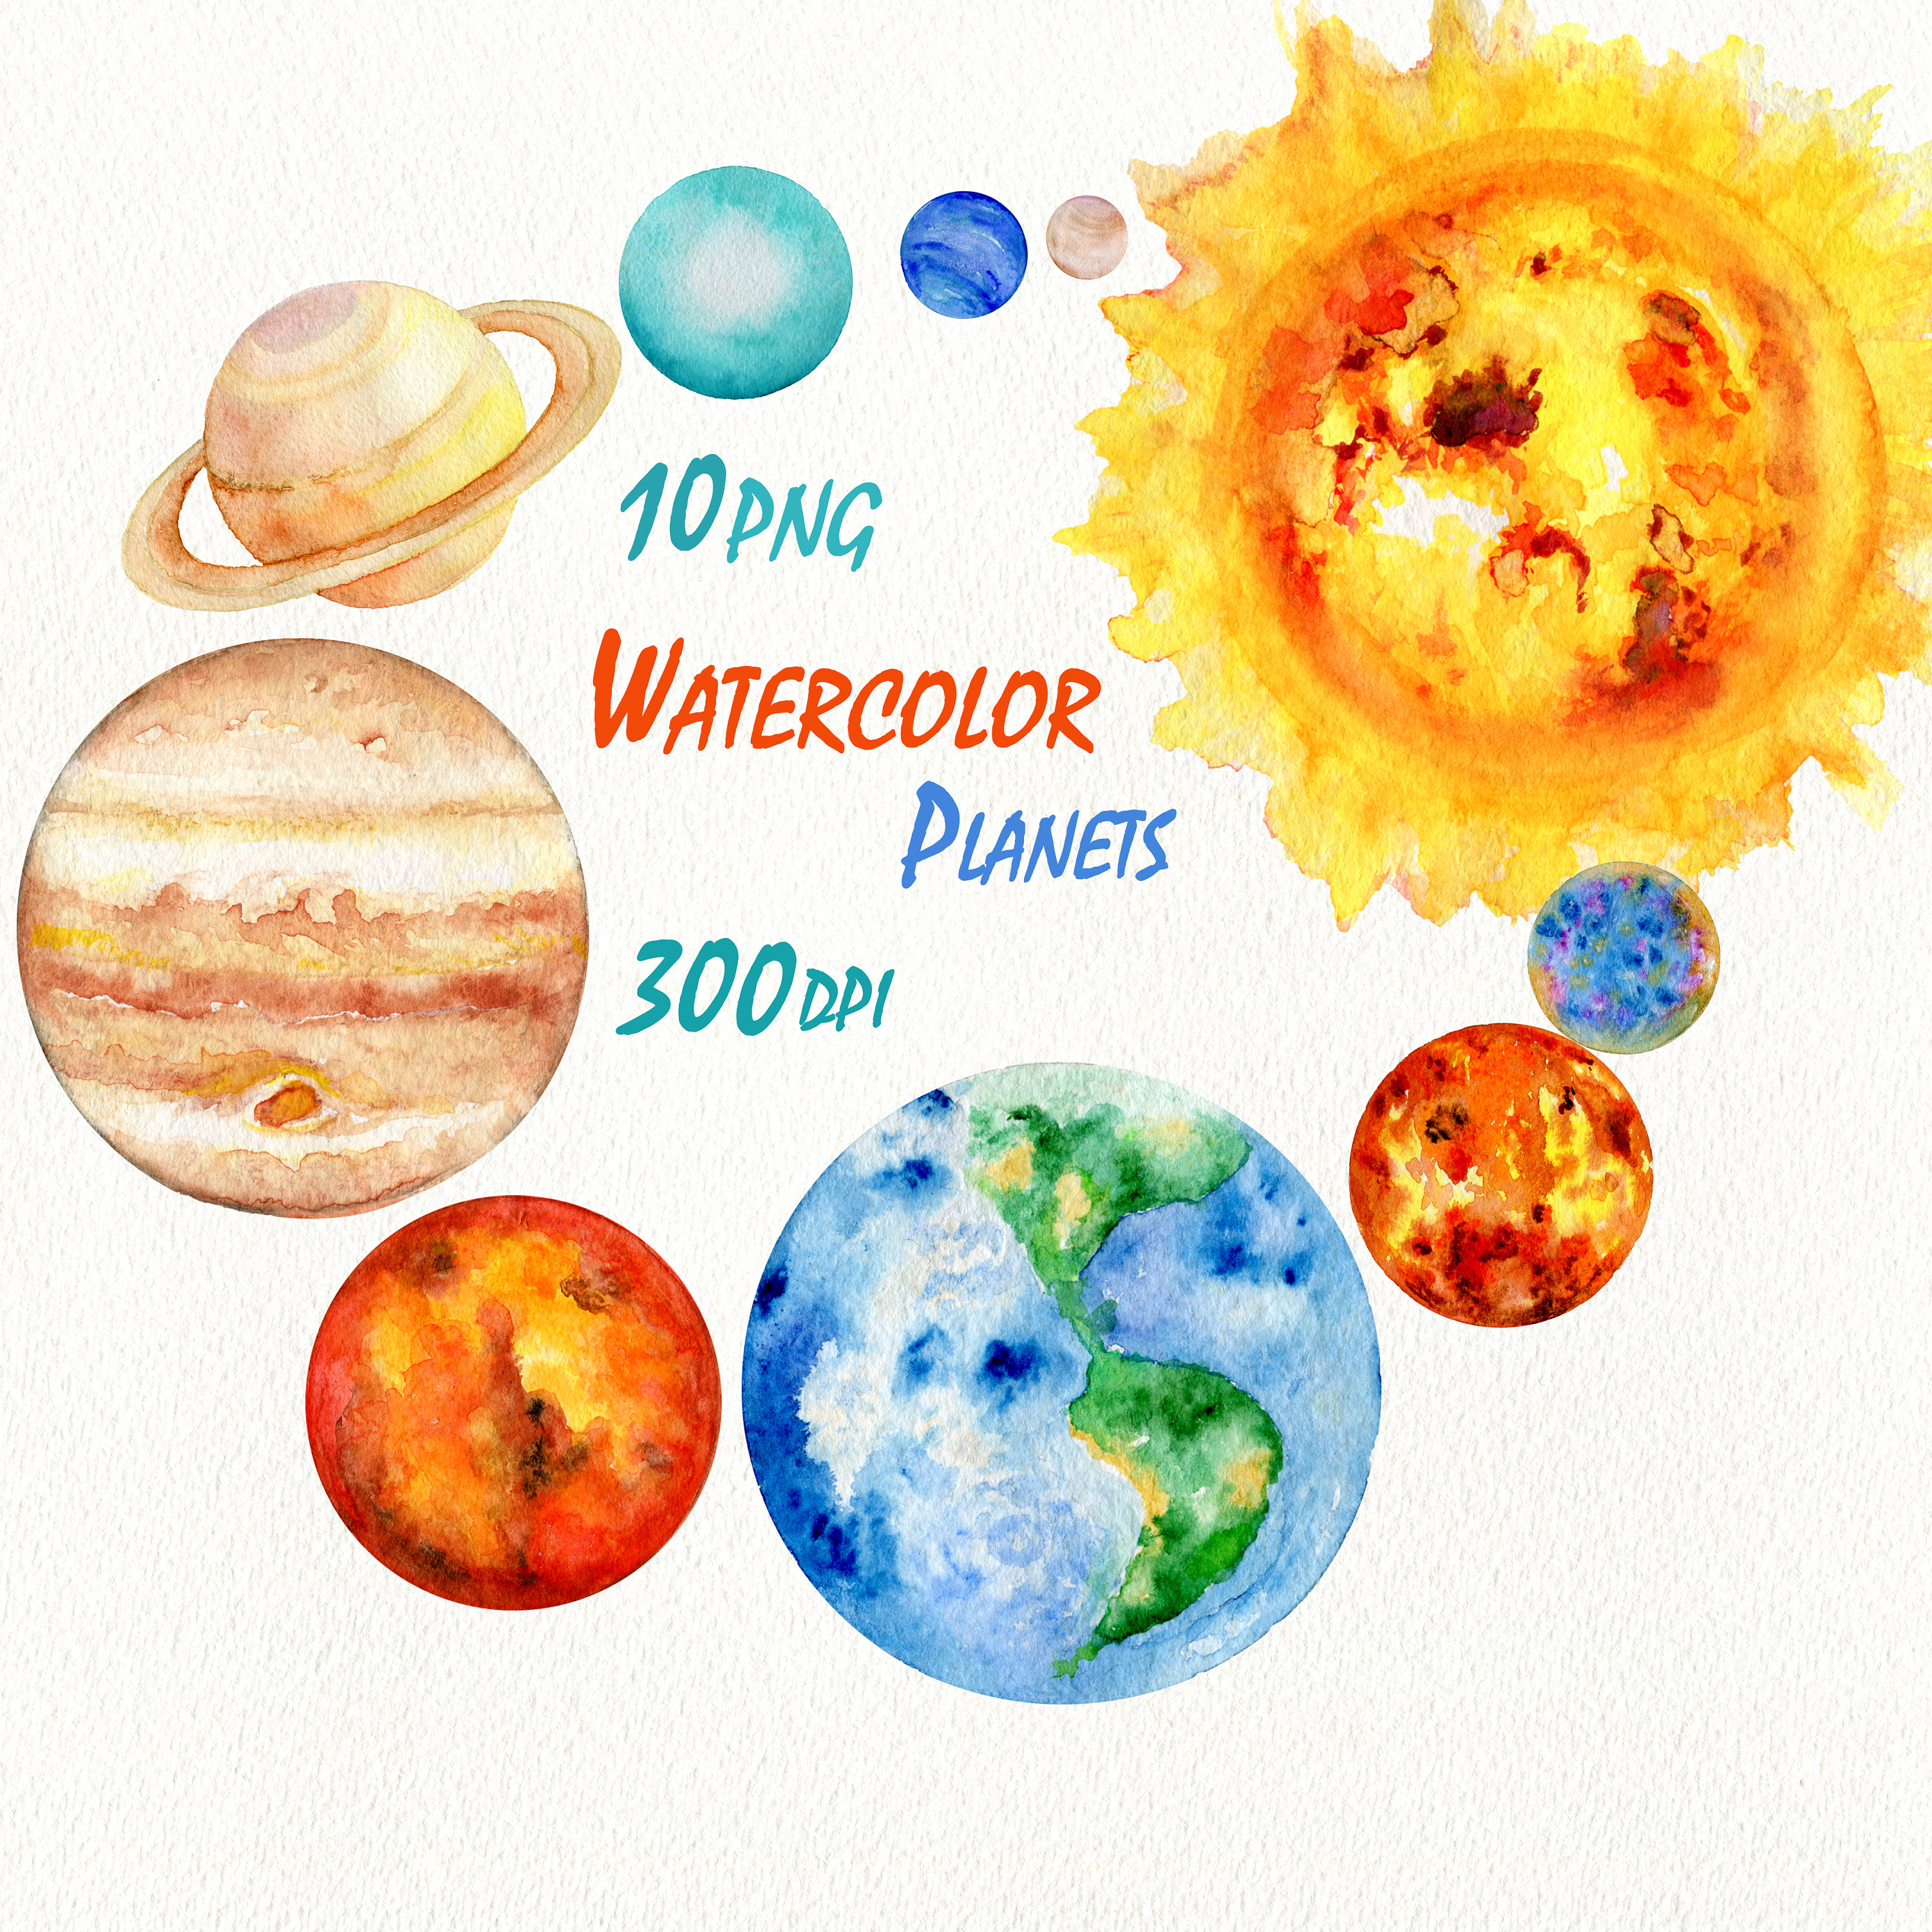 3000x3000 Planets Clipart Solar System Watercolor Science Clip Art Etsy